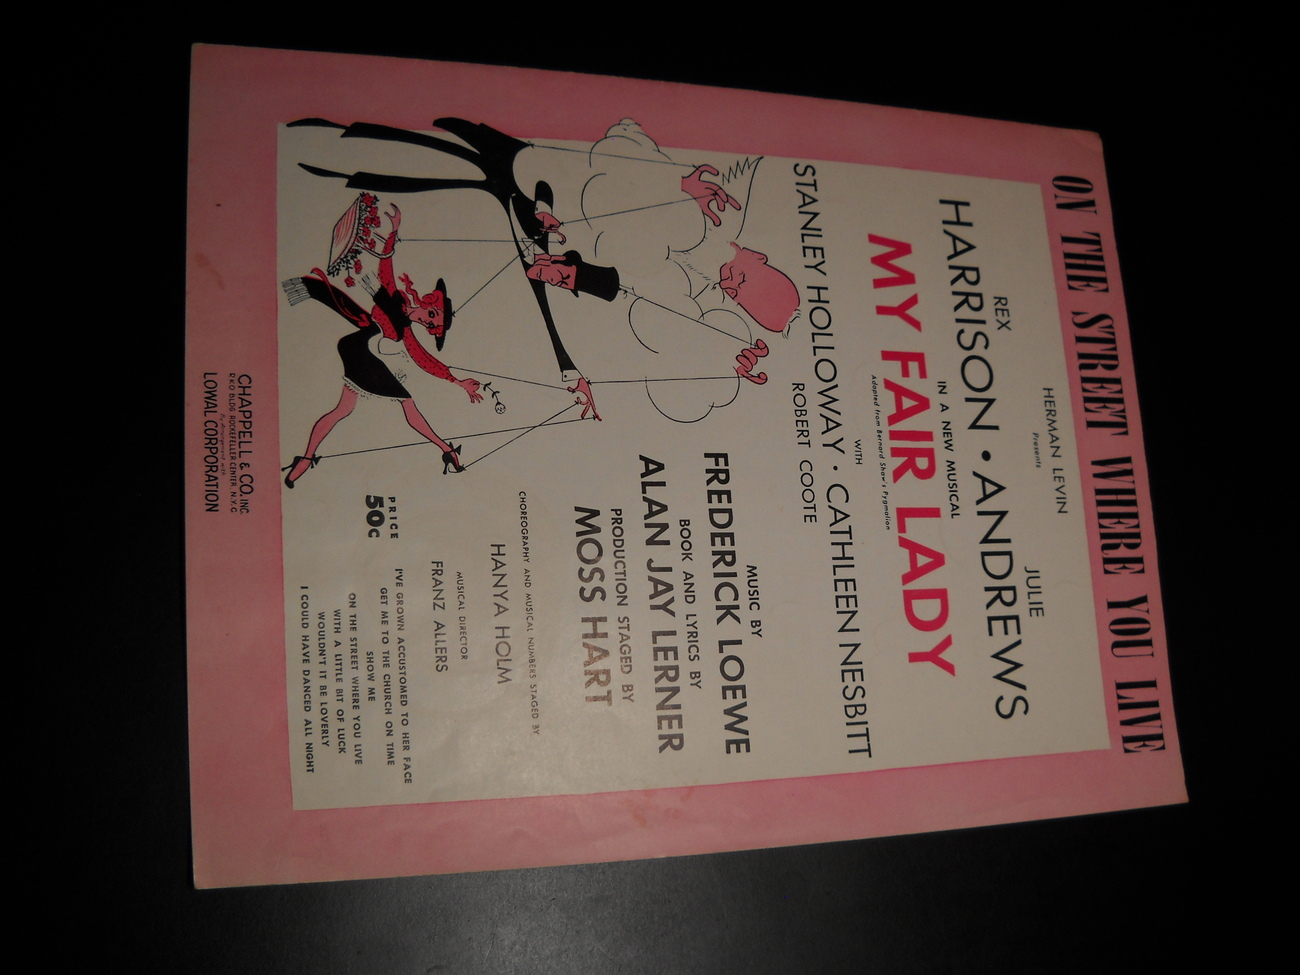 Sheet music on the street where you live my fair lady harrison andrews 1956 lerner loewe chappell music 01